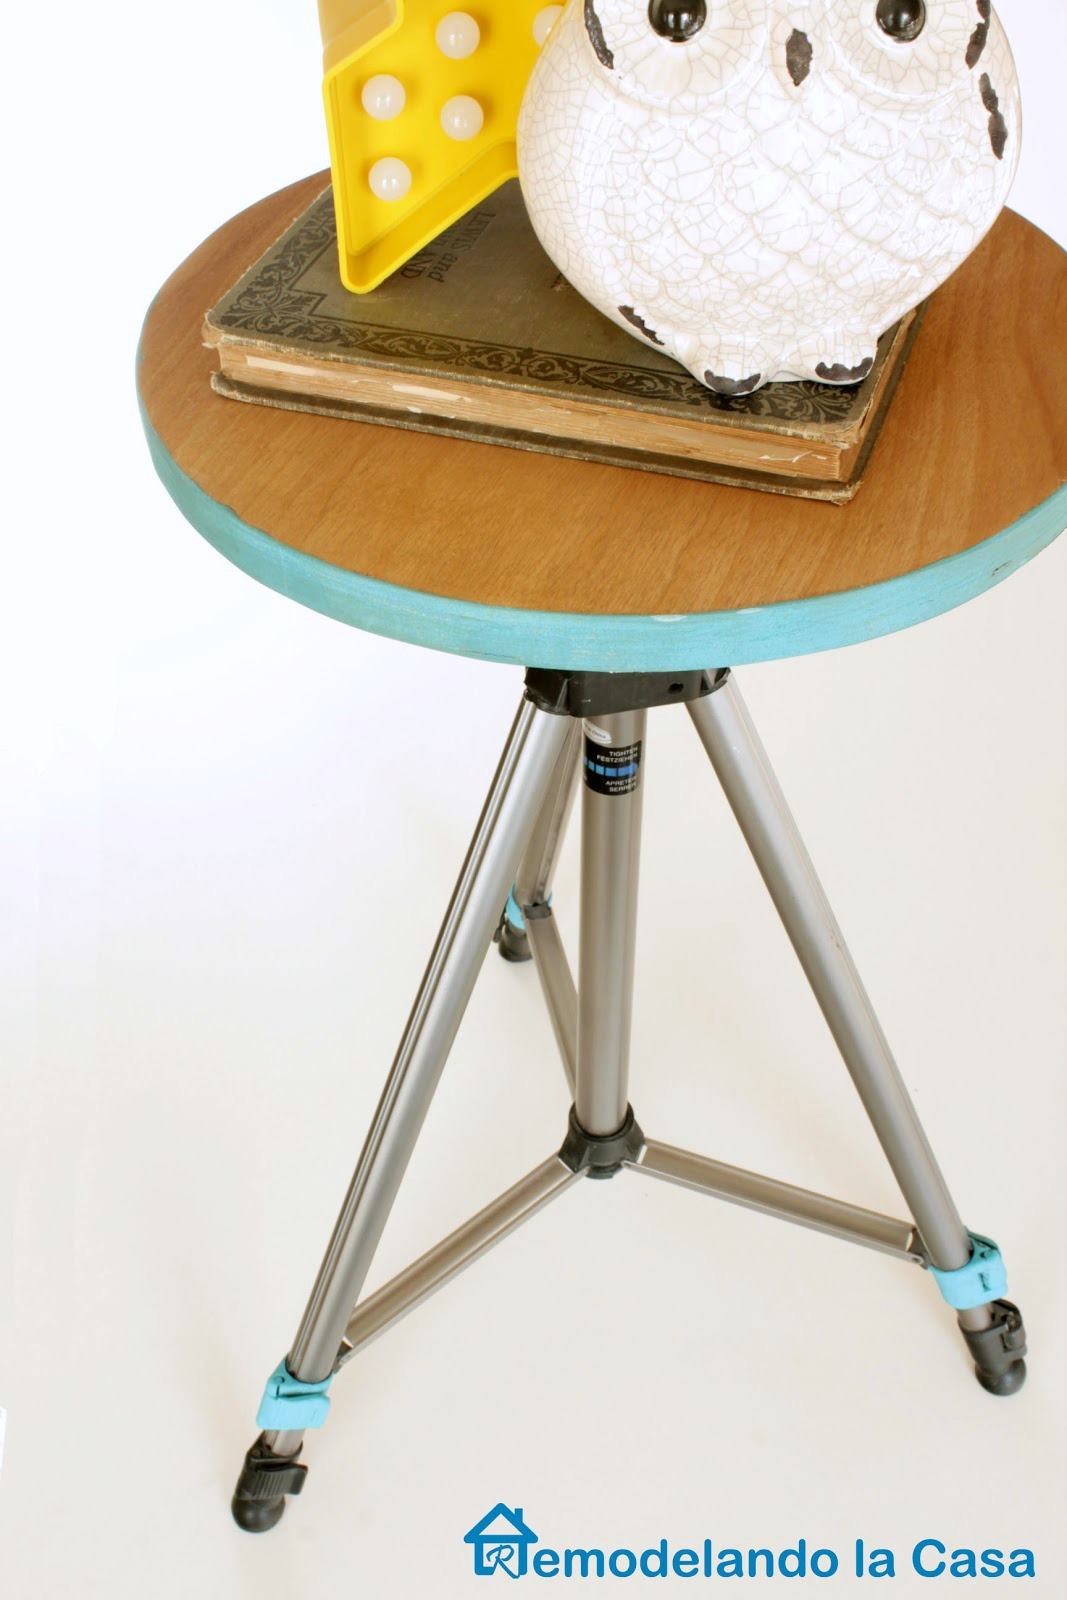 diy-tripod table3L